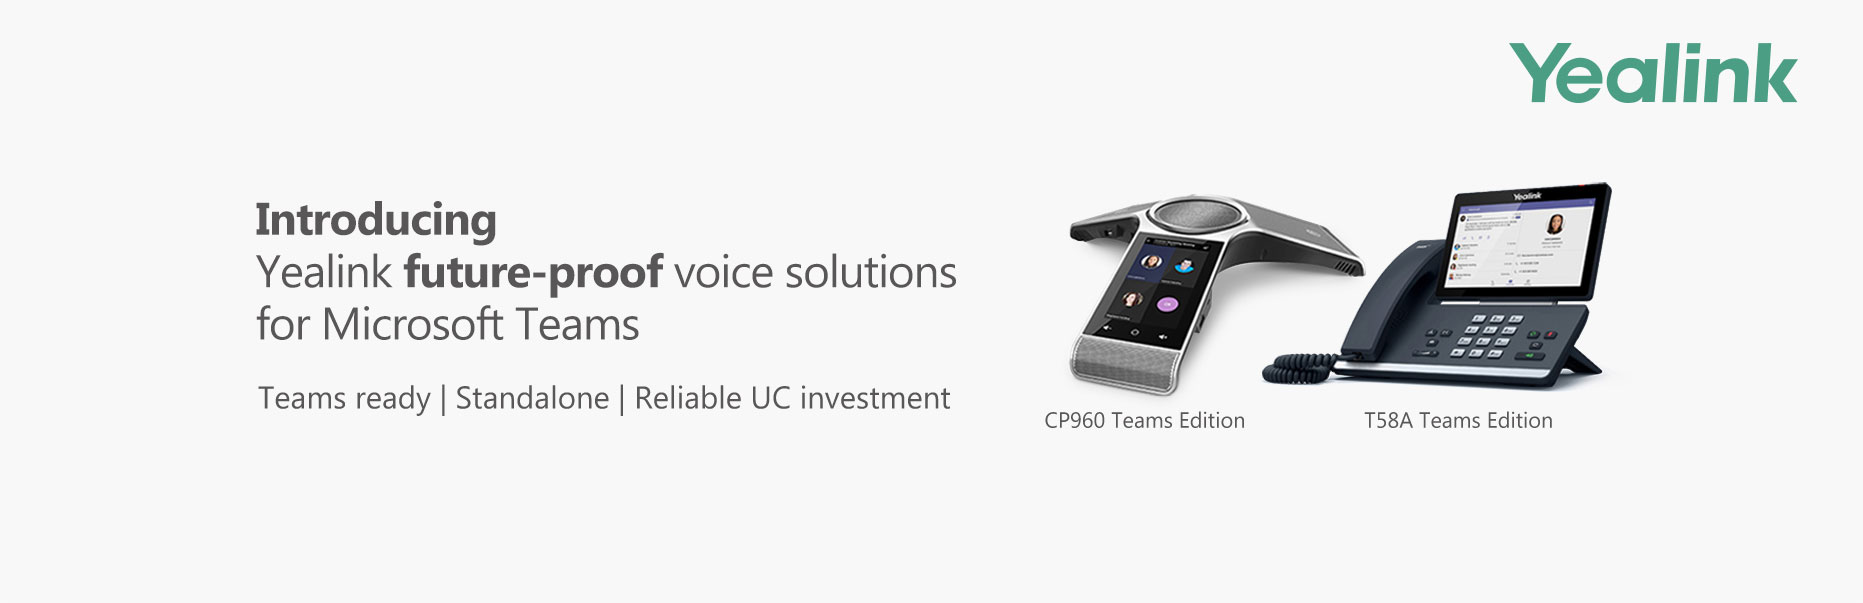 Yealink delivers future-proof voice solutions for the